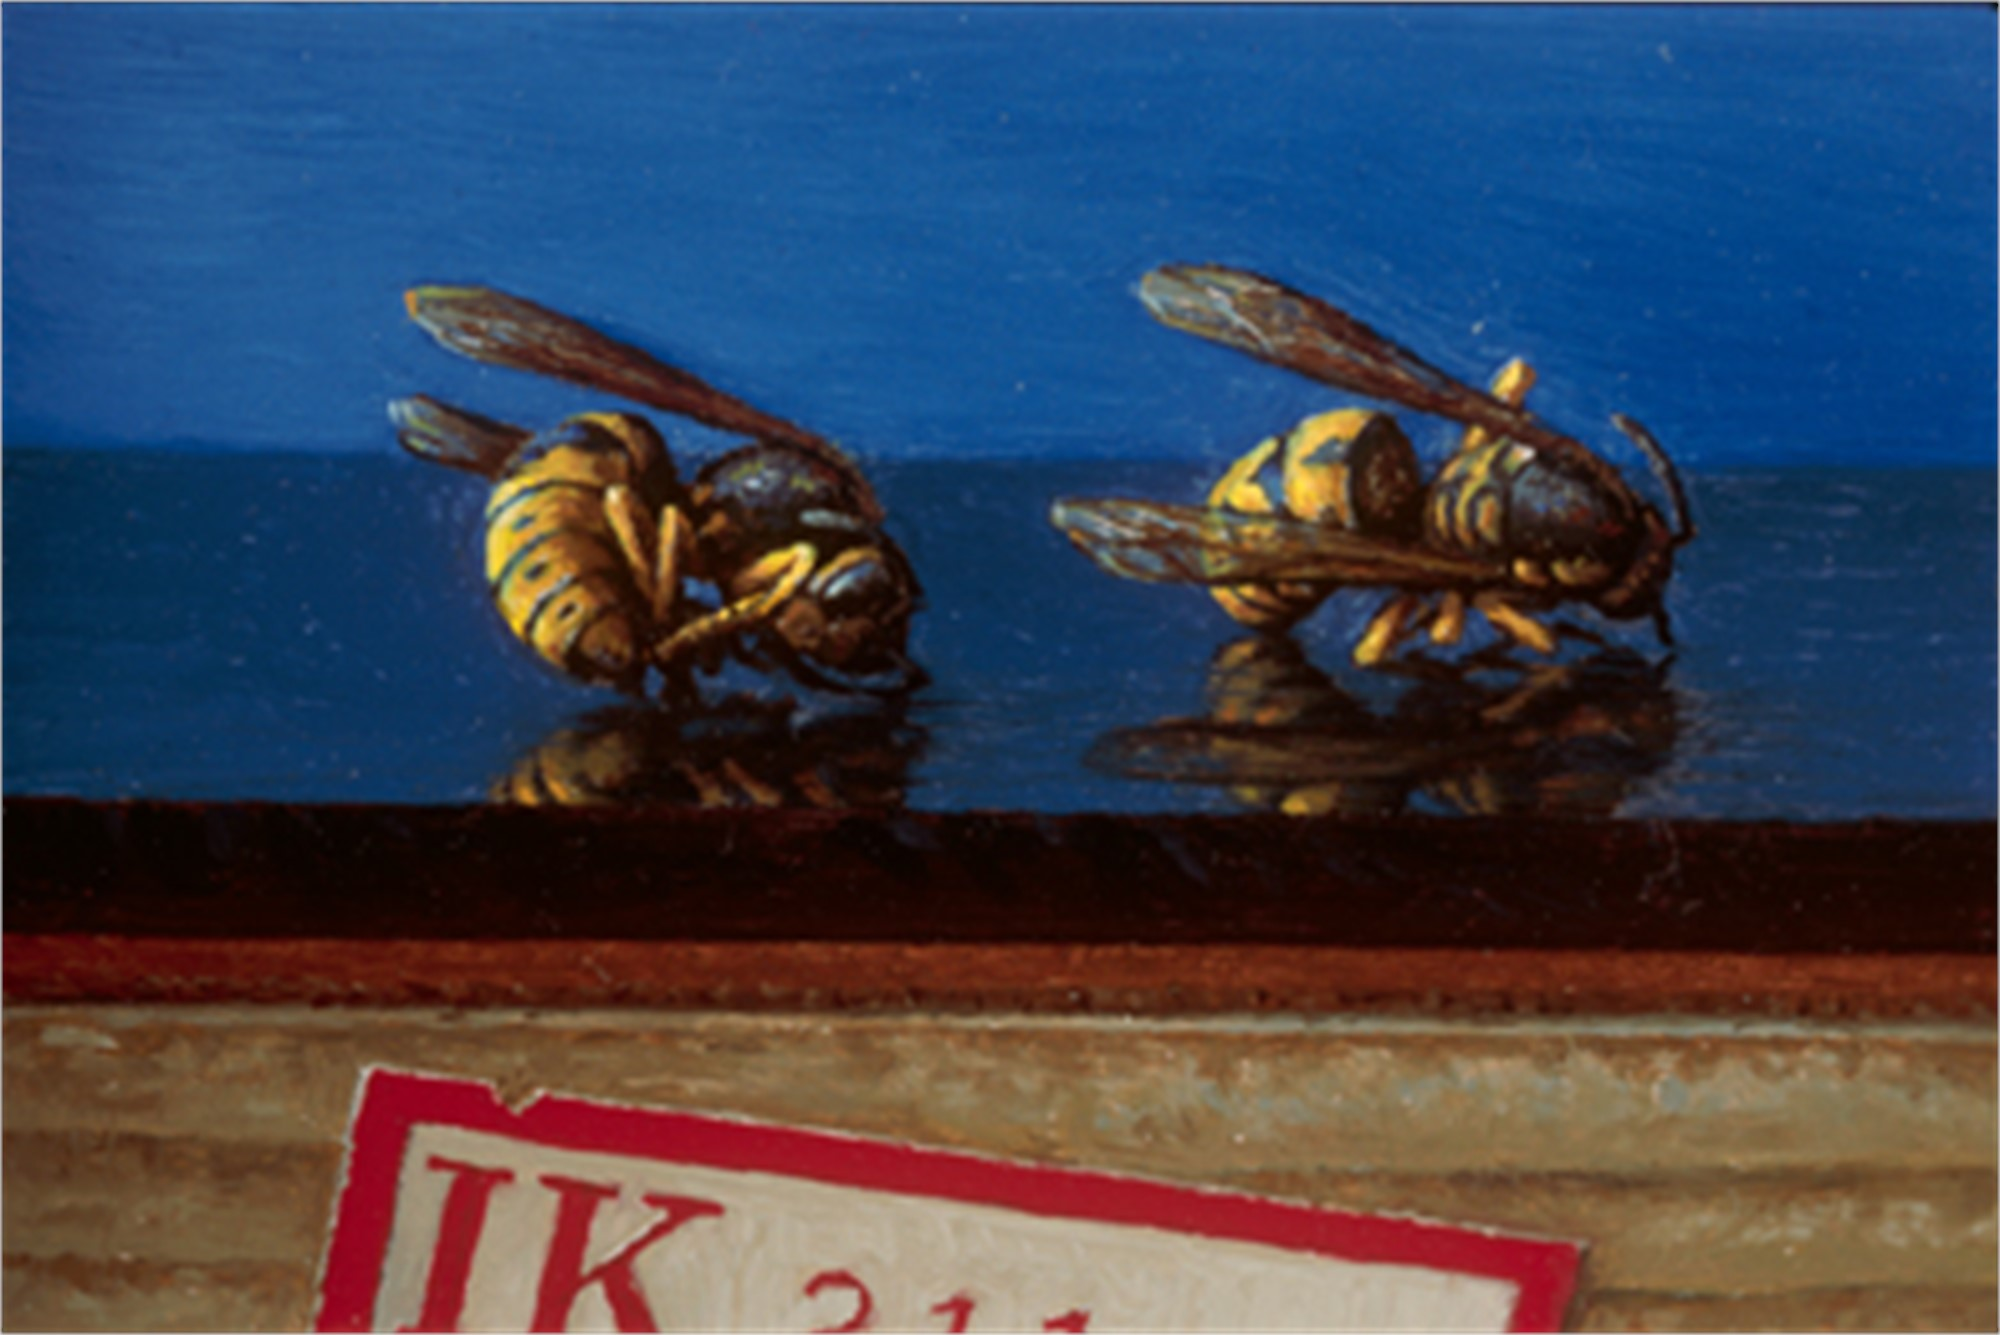 Two Wasps by Scott Fraser